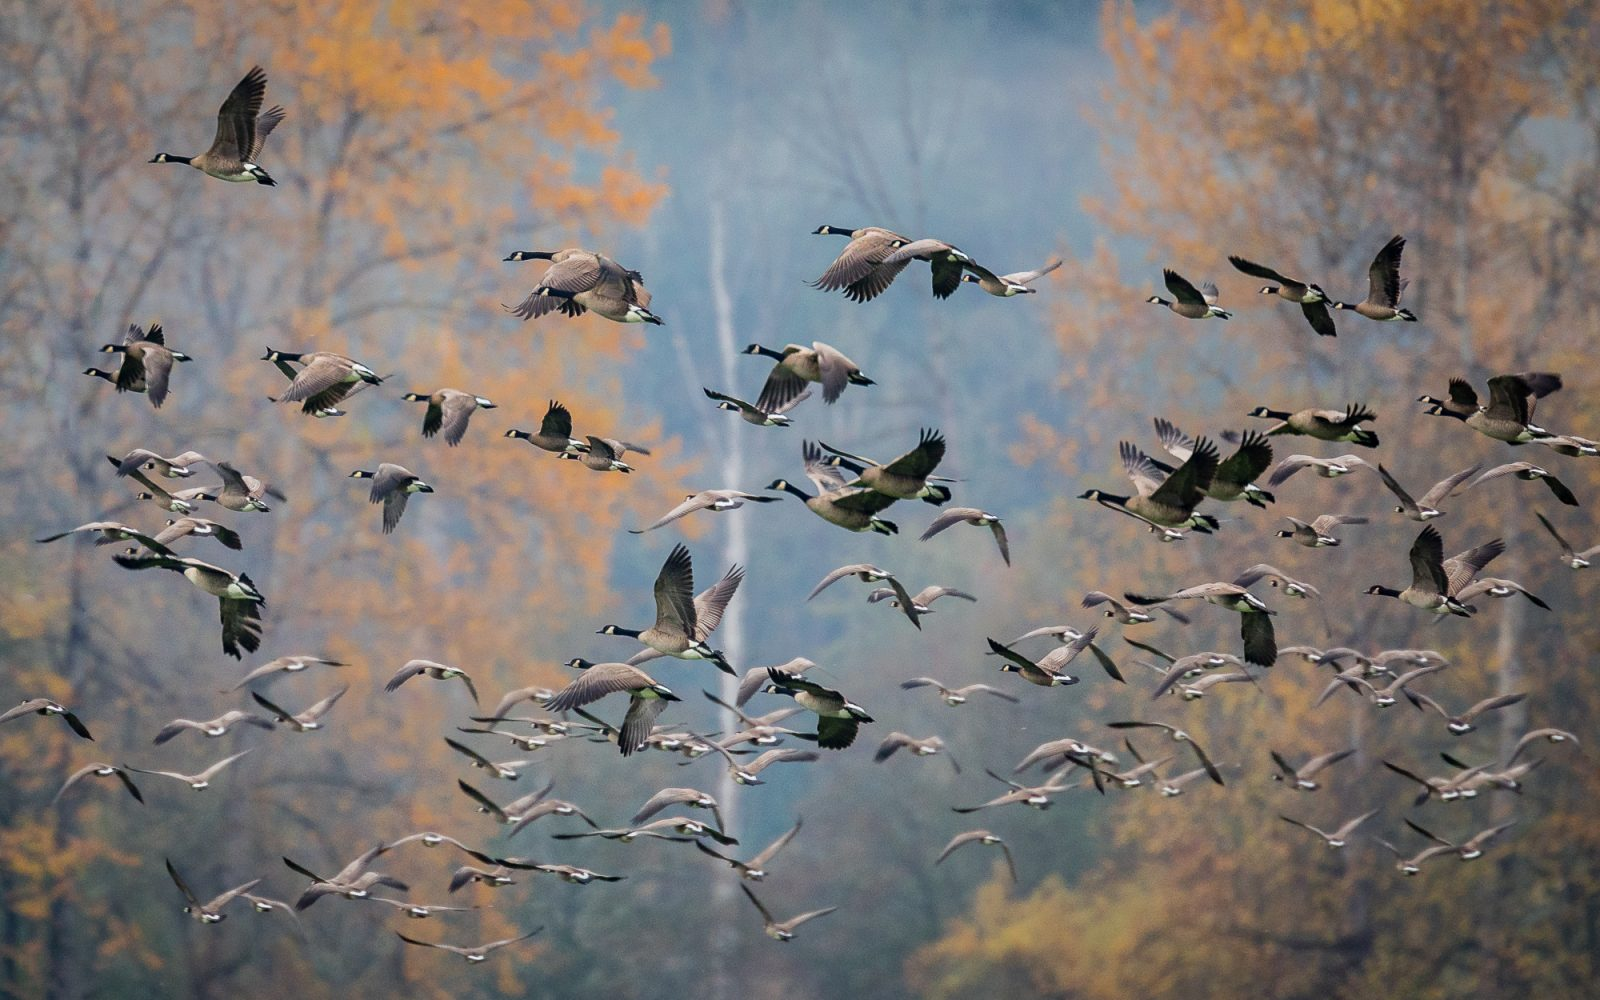 Flight of the Cackling Geese